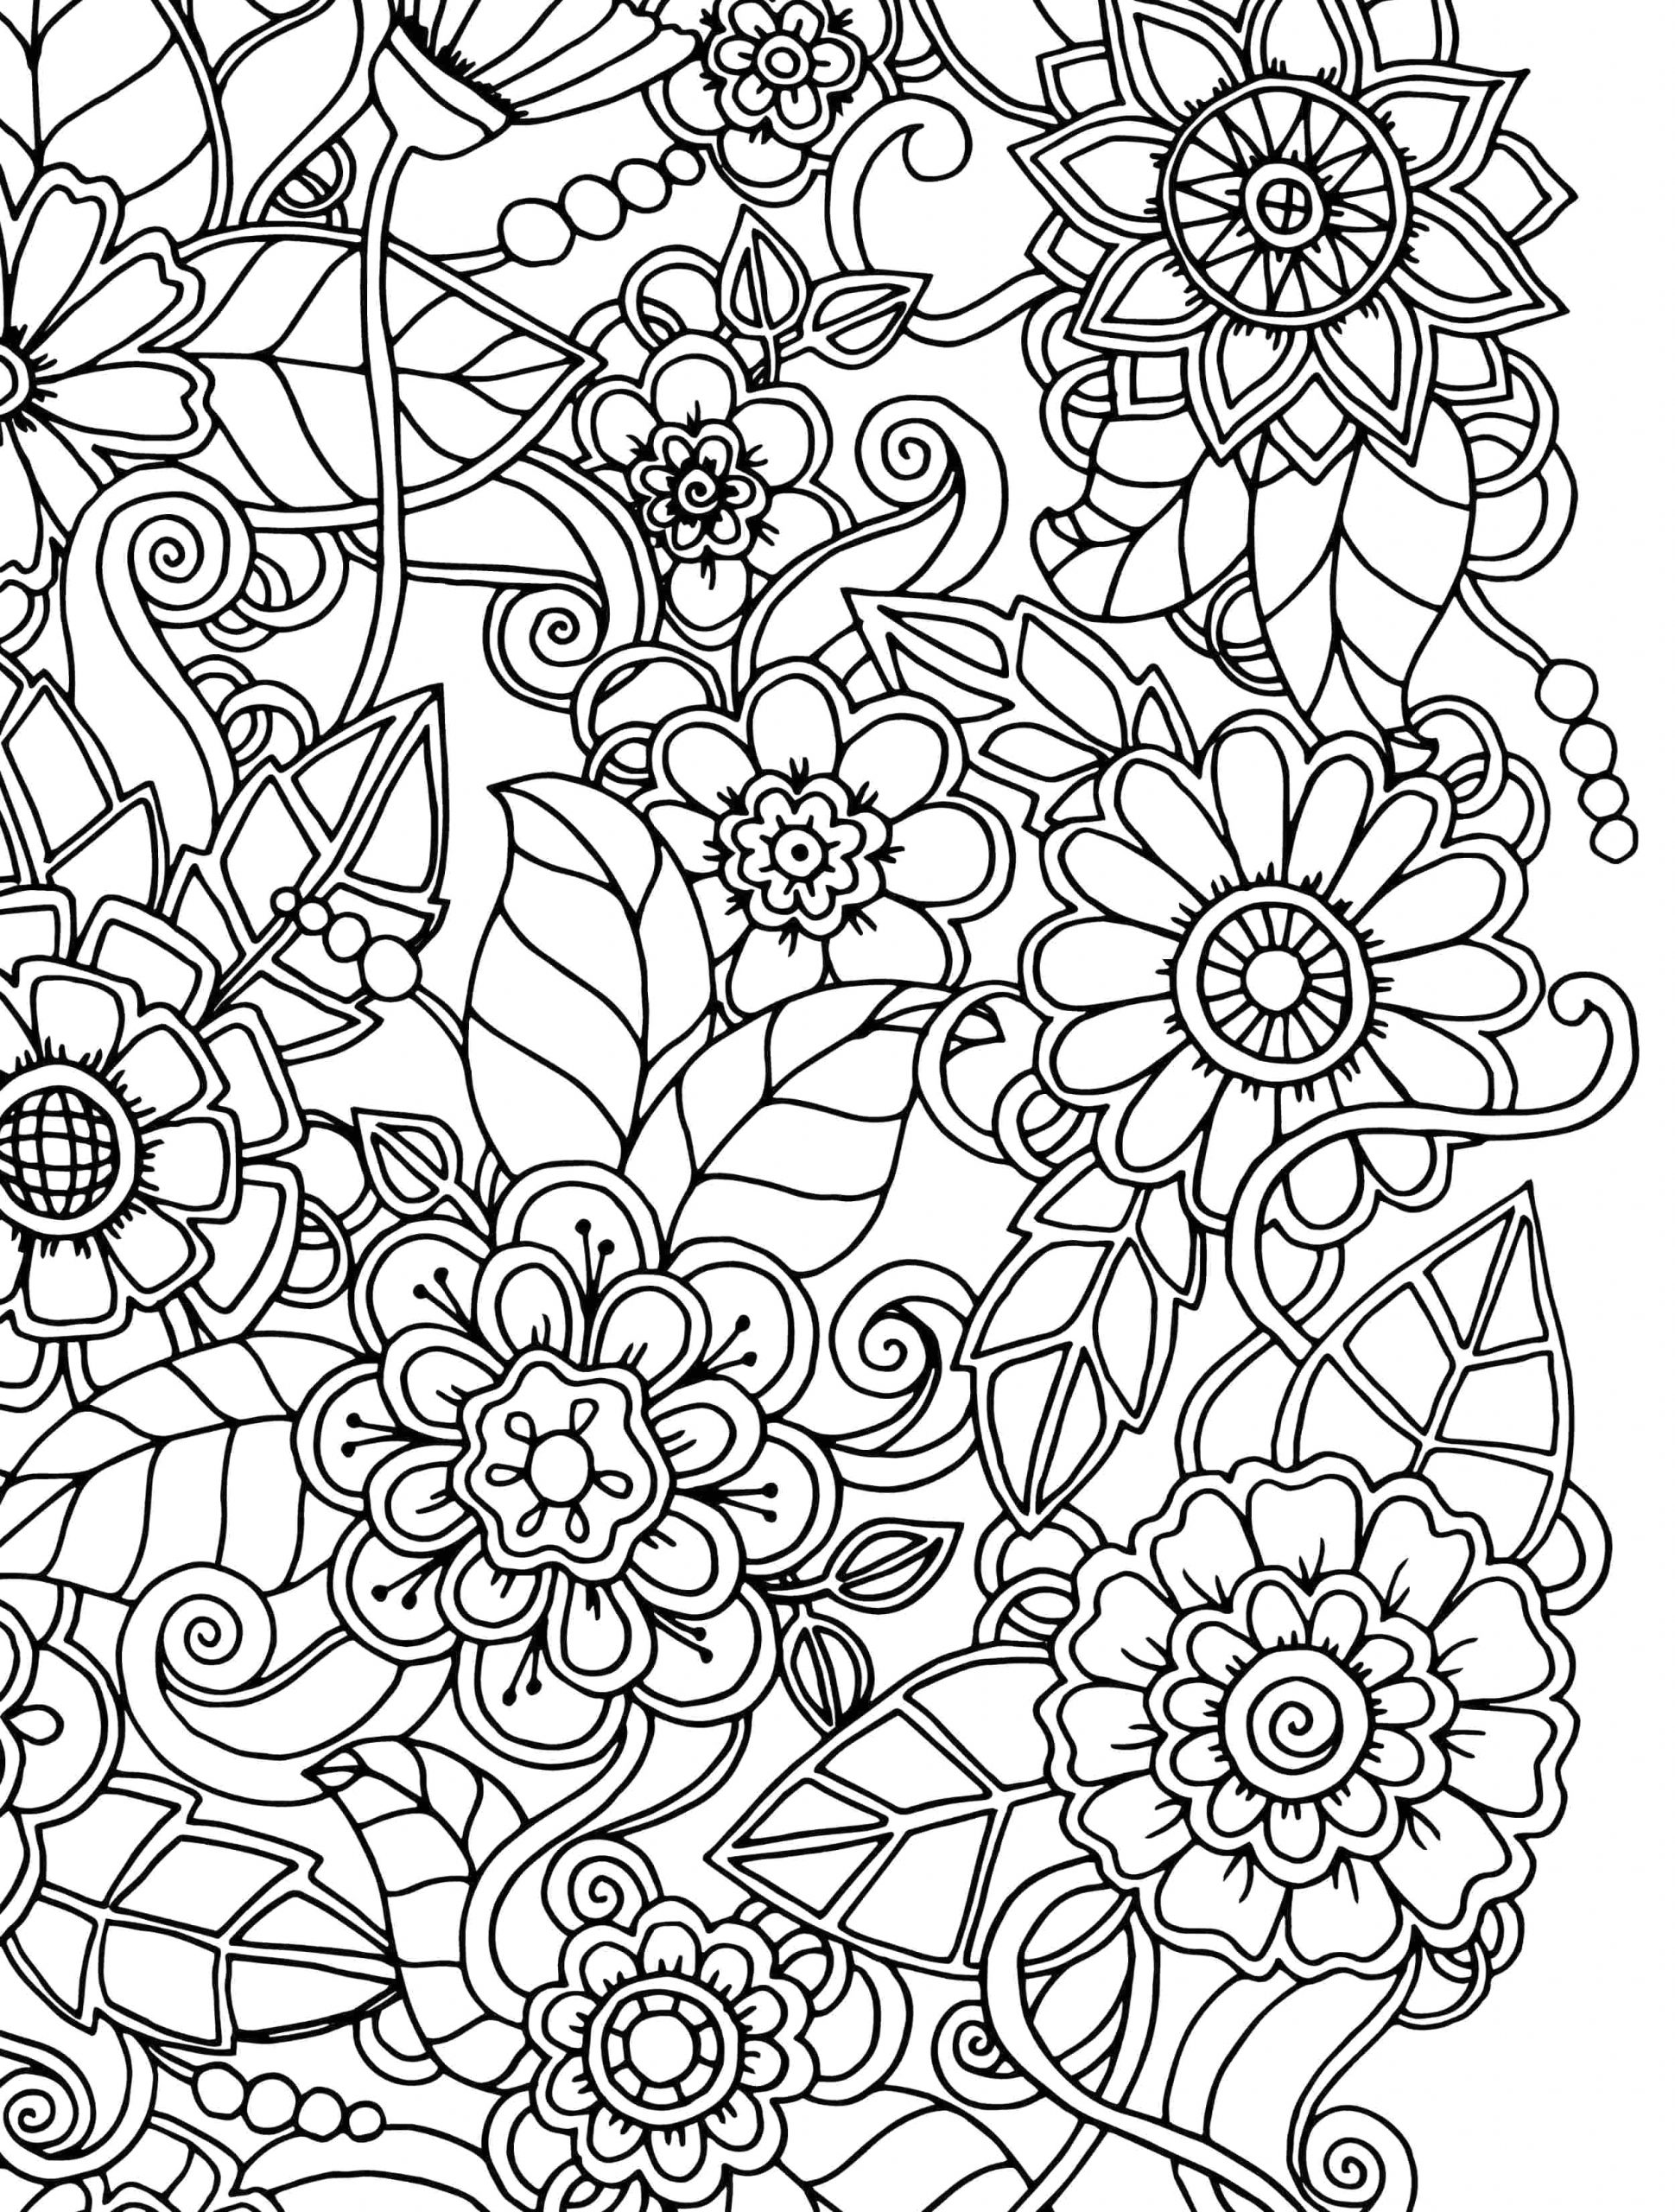 Free Printable Coloring Pages for Adults with Dementia Free Coloring Pages for Adults with Dementia – Learning